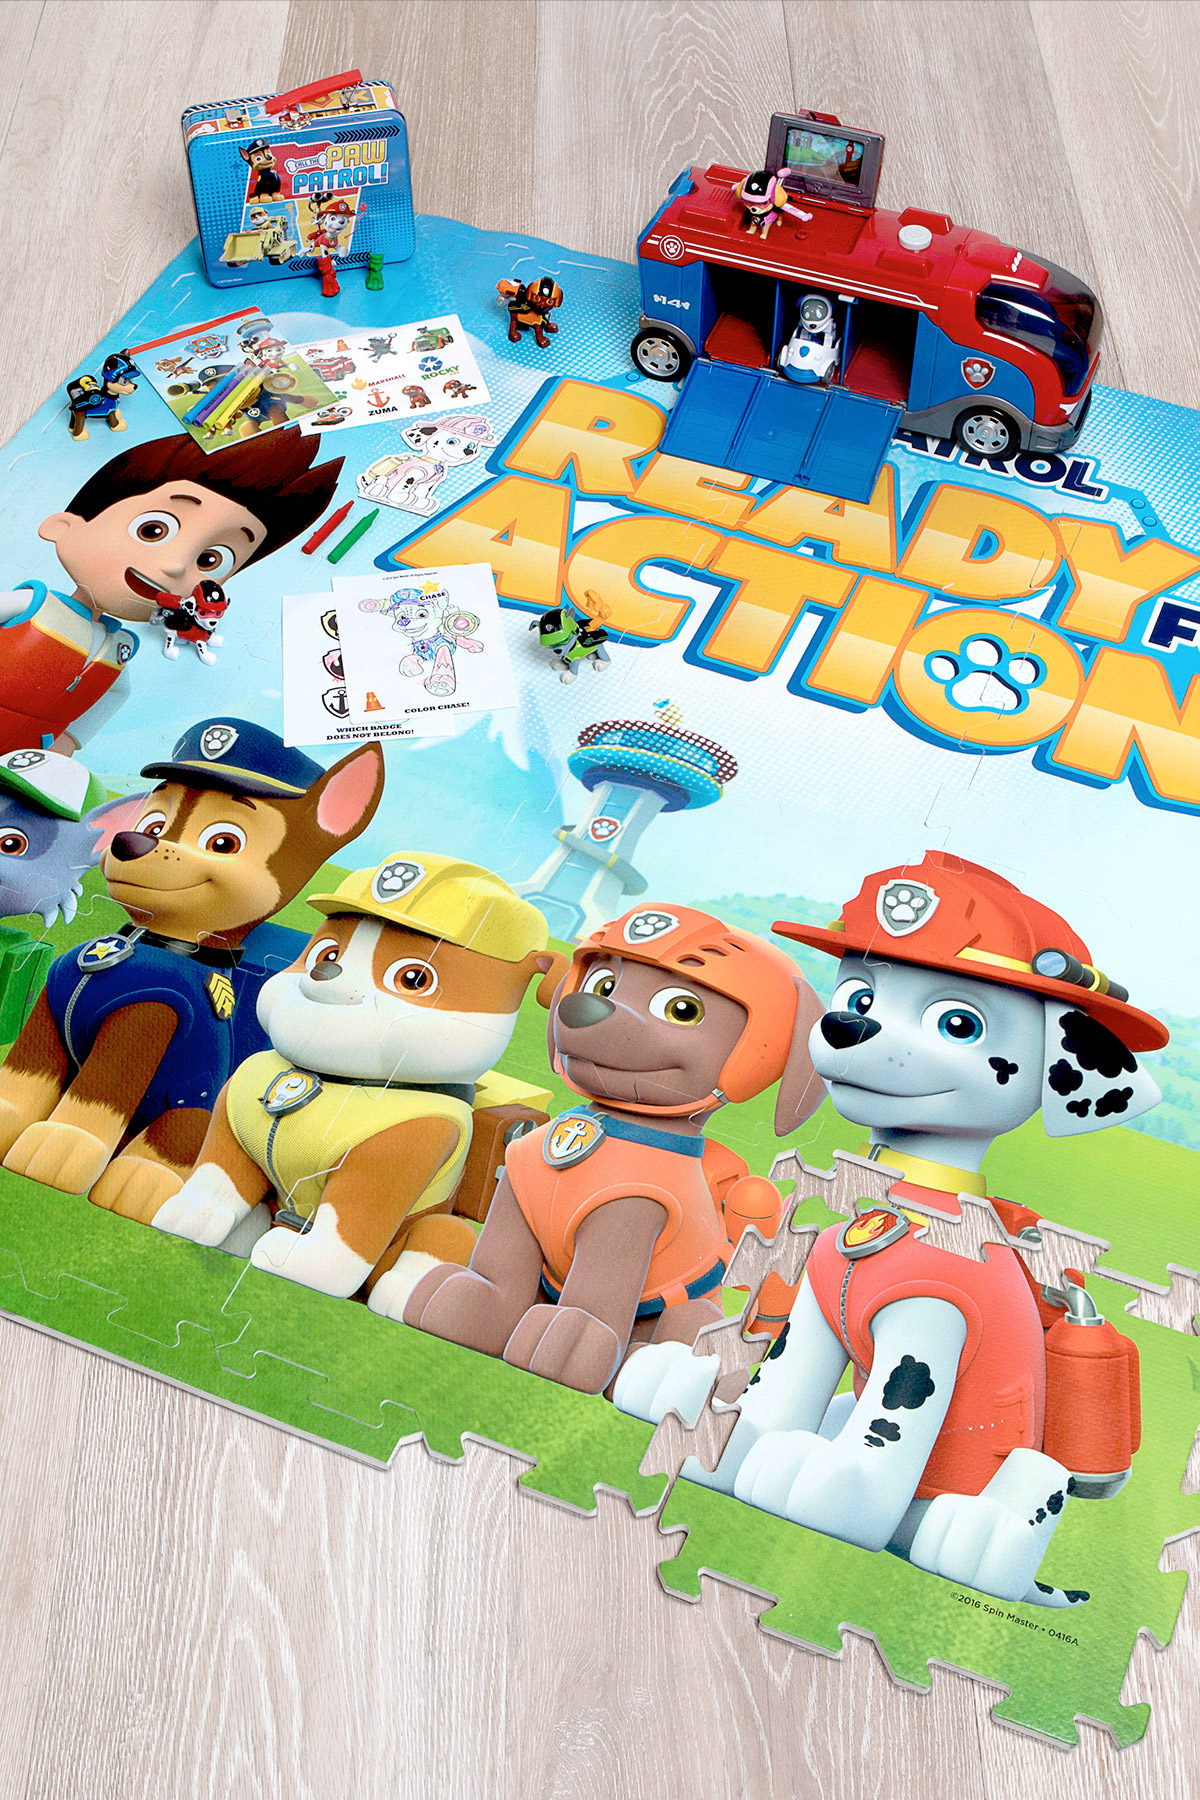 PAW Patrol Mission Play Date